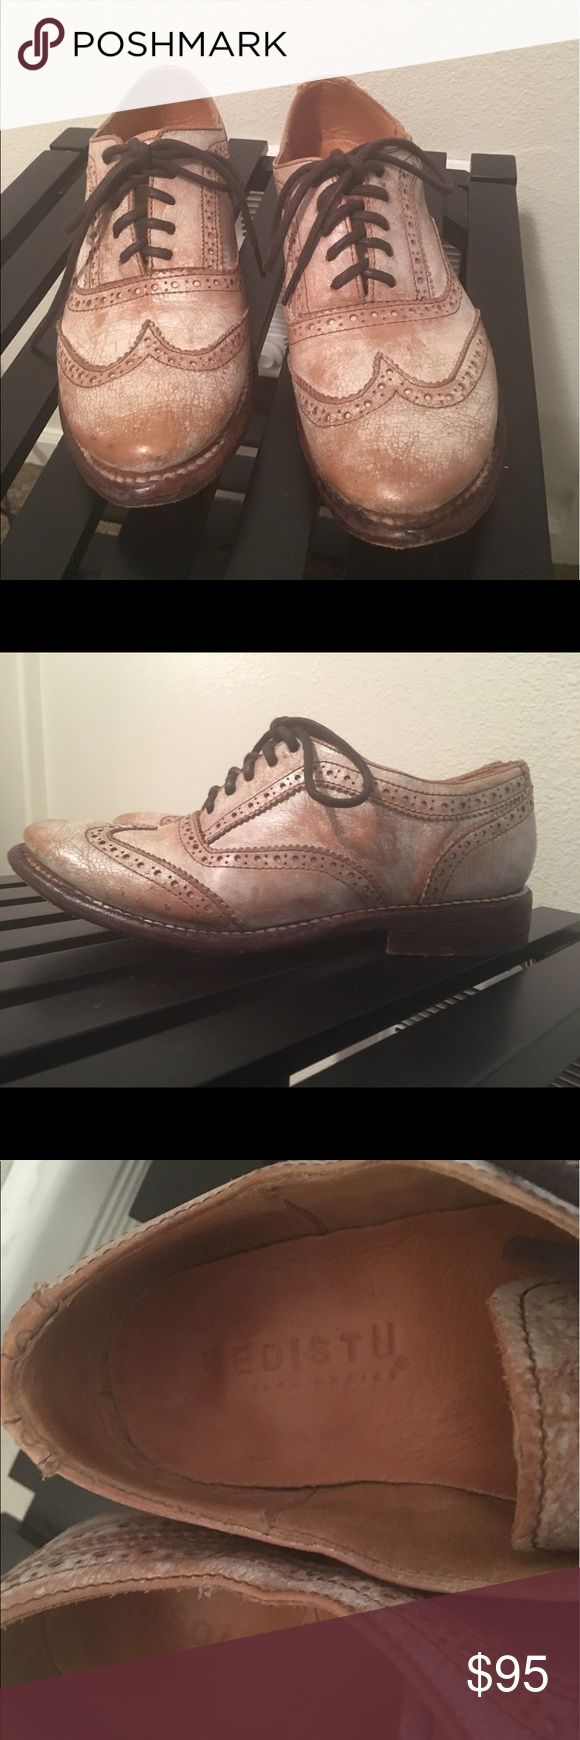 Bed Stu Lita wingtip oxfords Pre-owned Bed Stu Lita wingtip oxfords. In great condition! Have a finished distressed finish. Size 6. Bed Stu Shoes Flats & Loafers